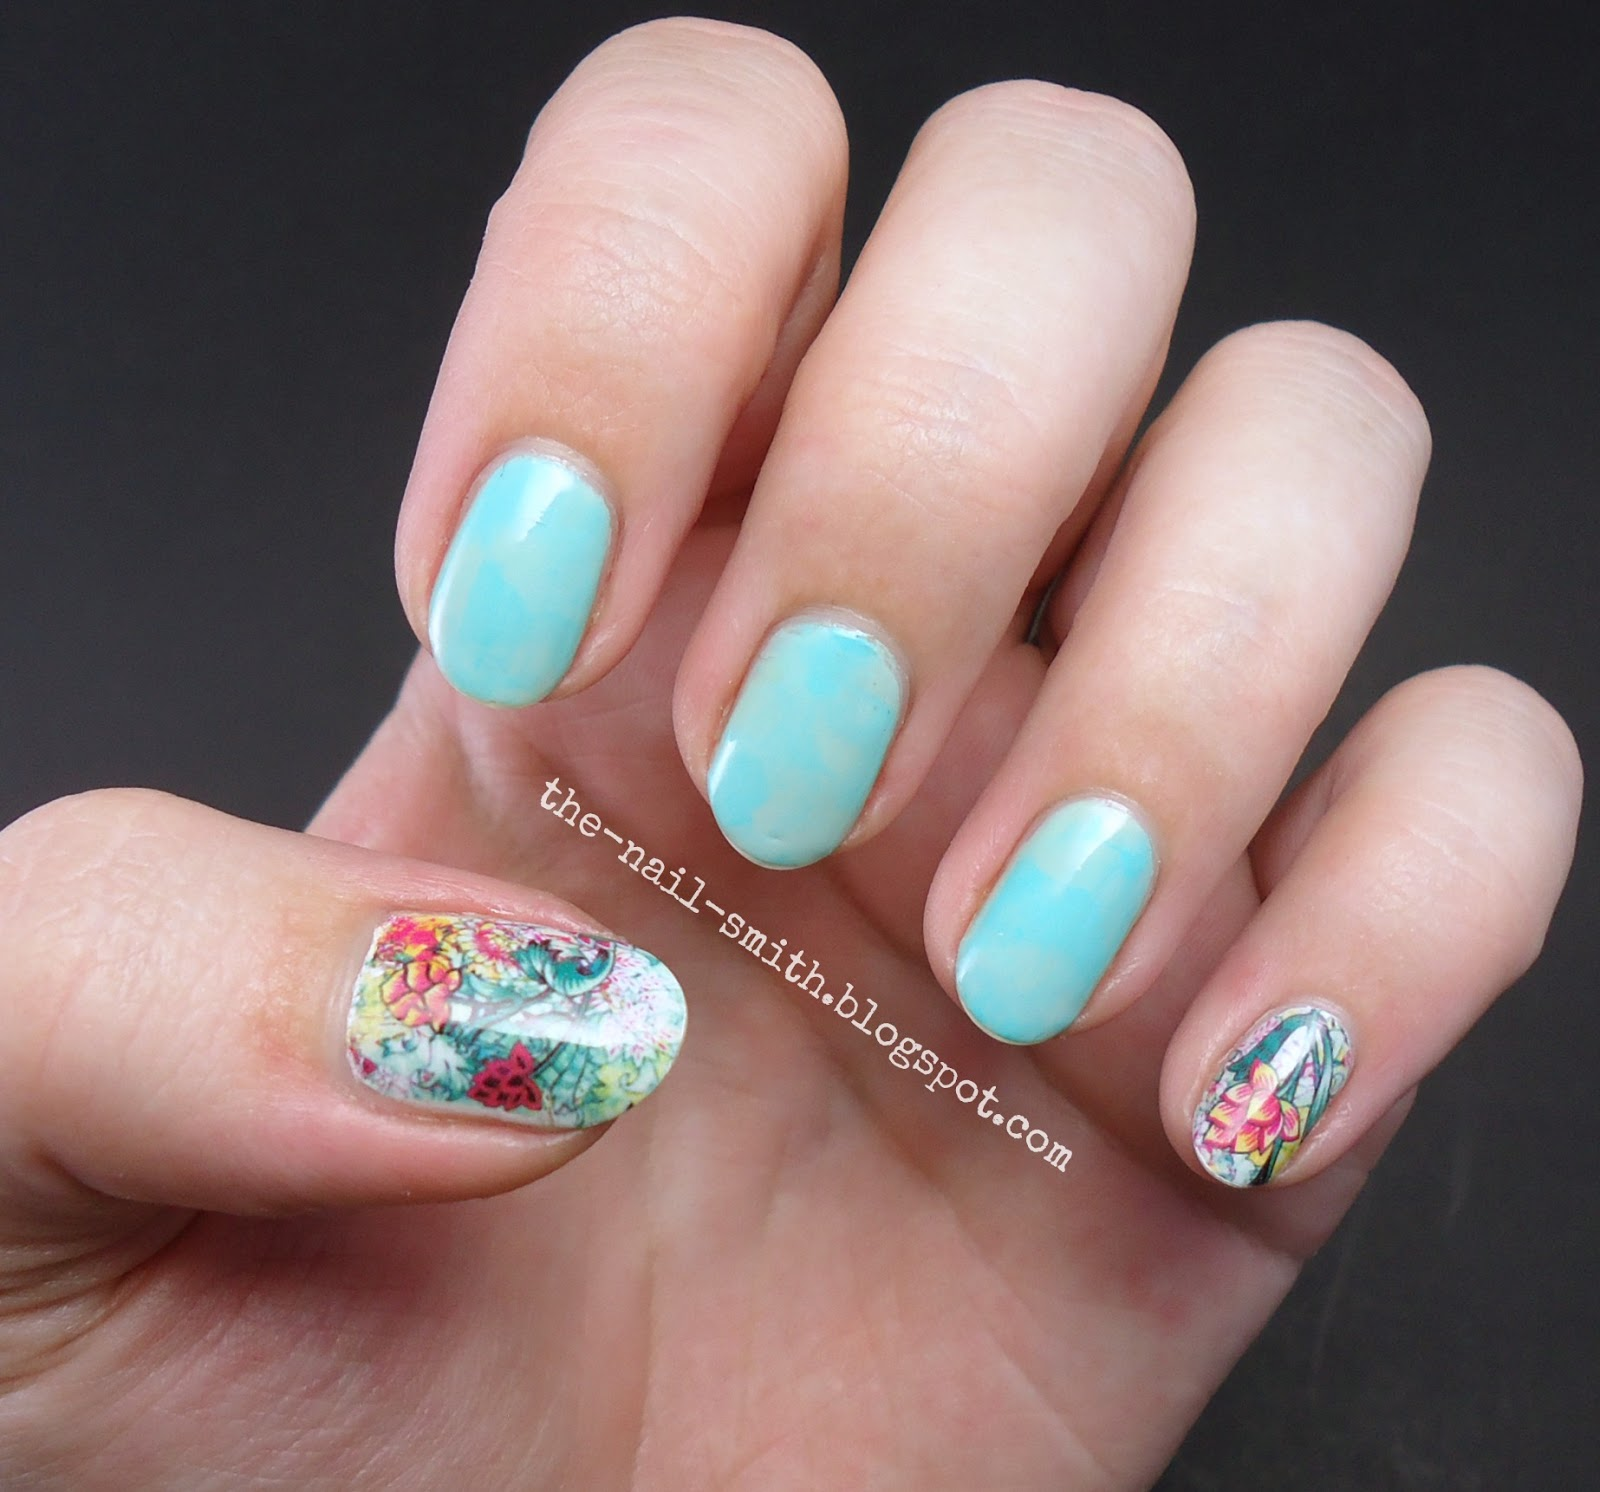 The Nail Smith: Born Pretty Store Review: Funky Floral Water Decals